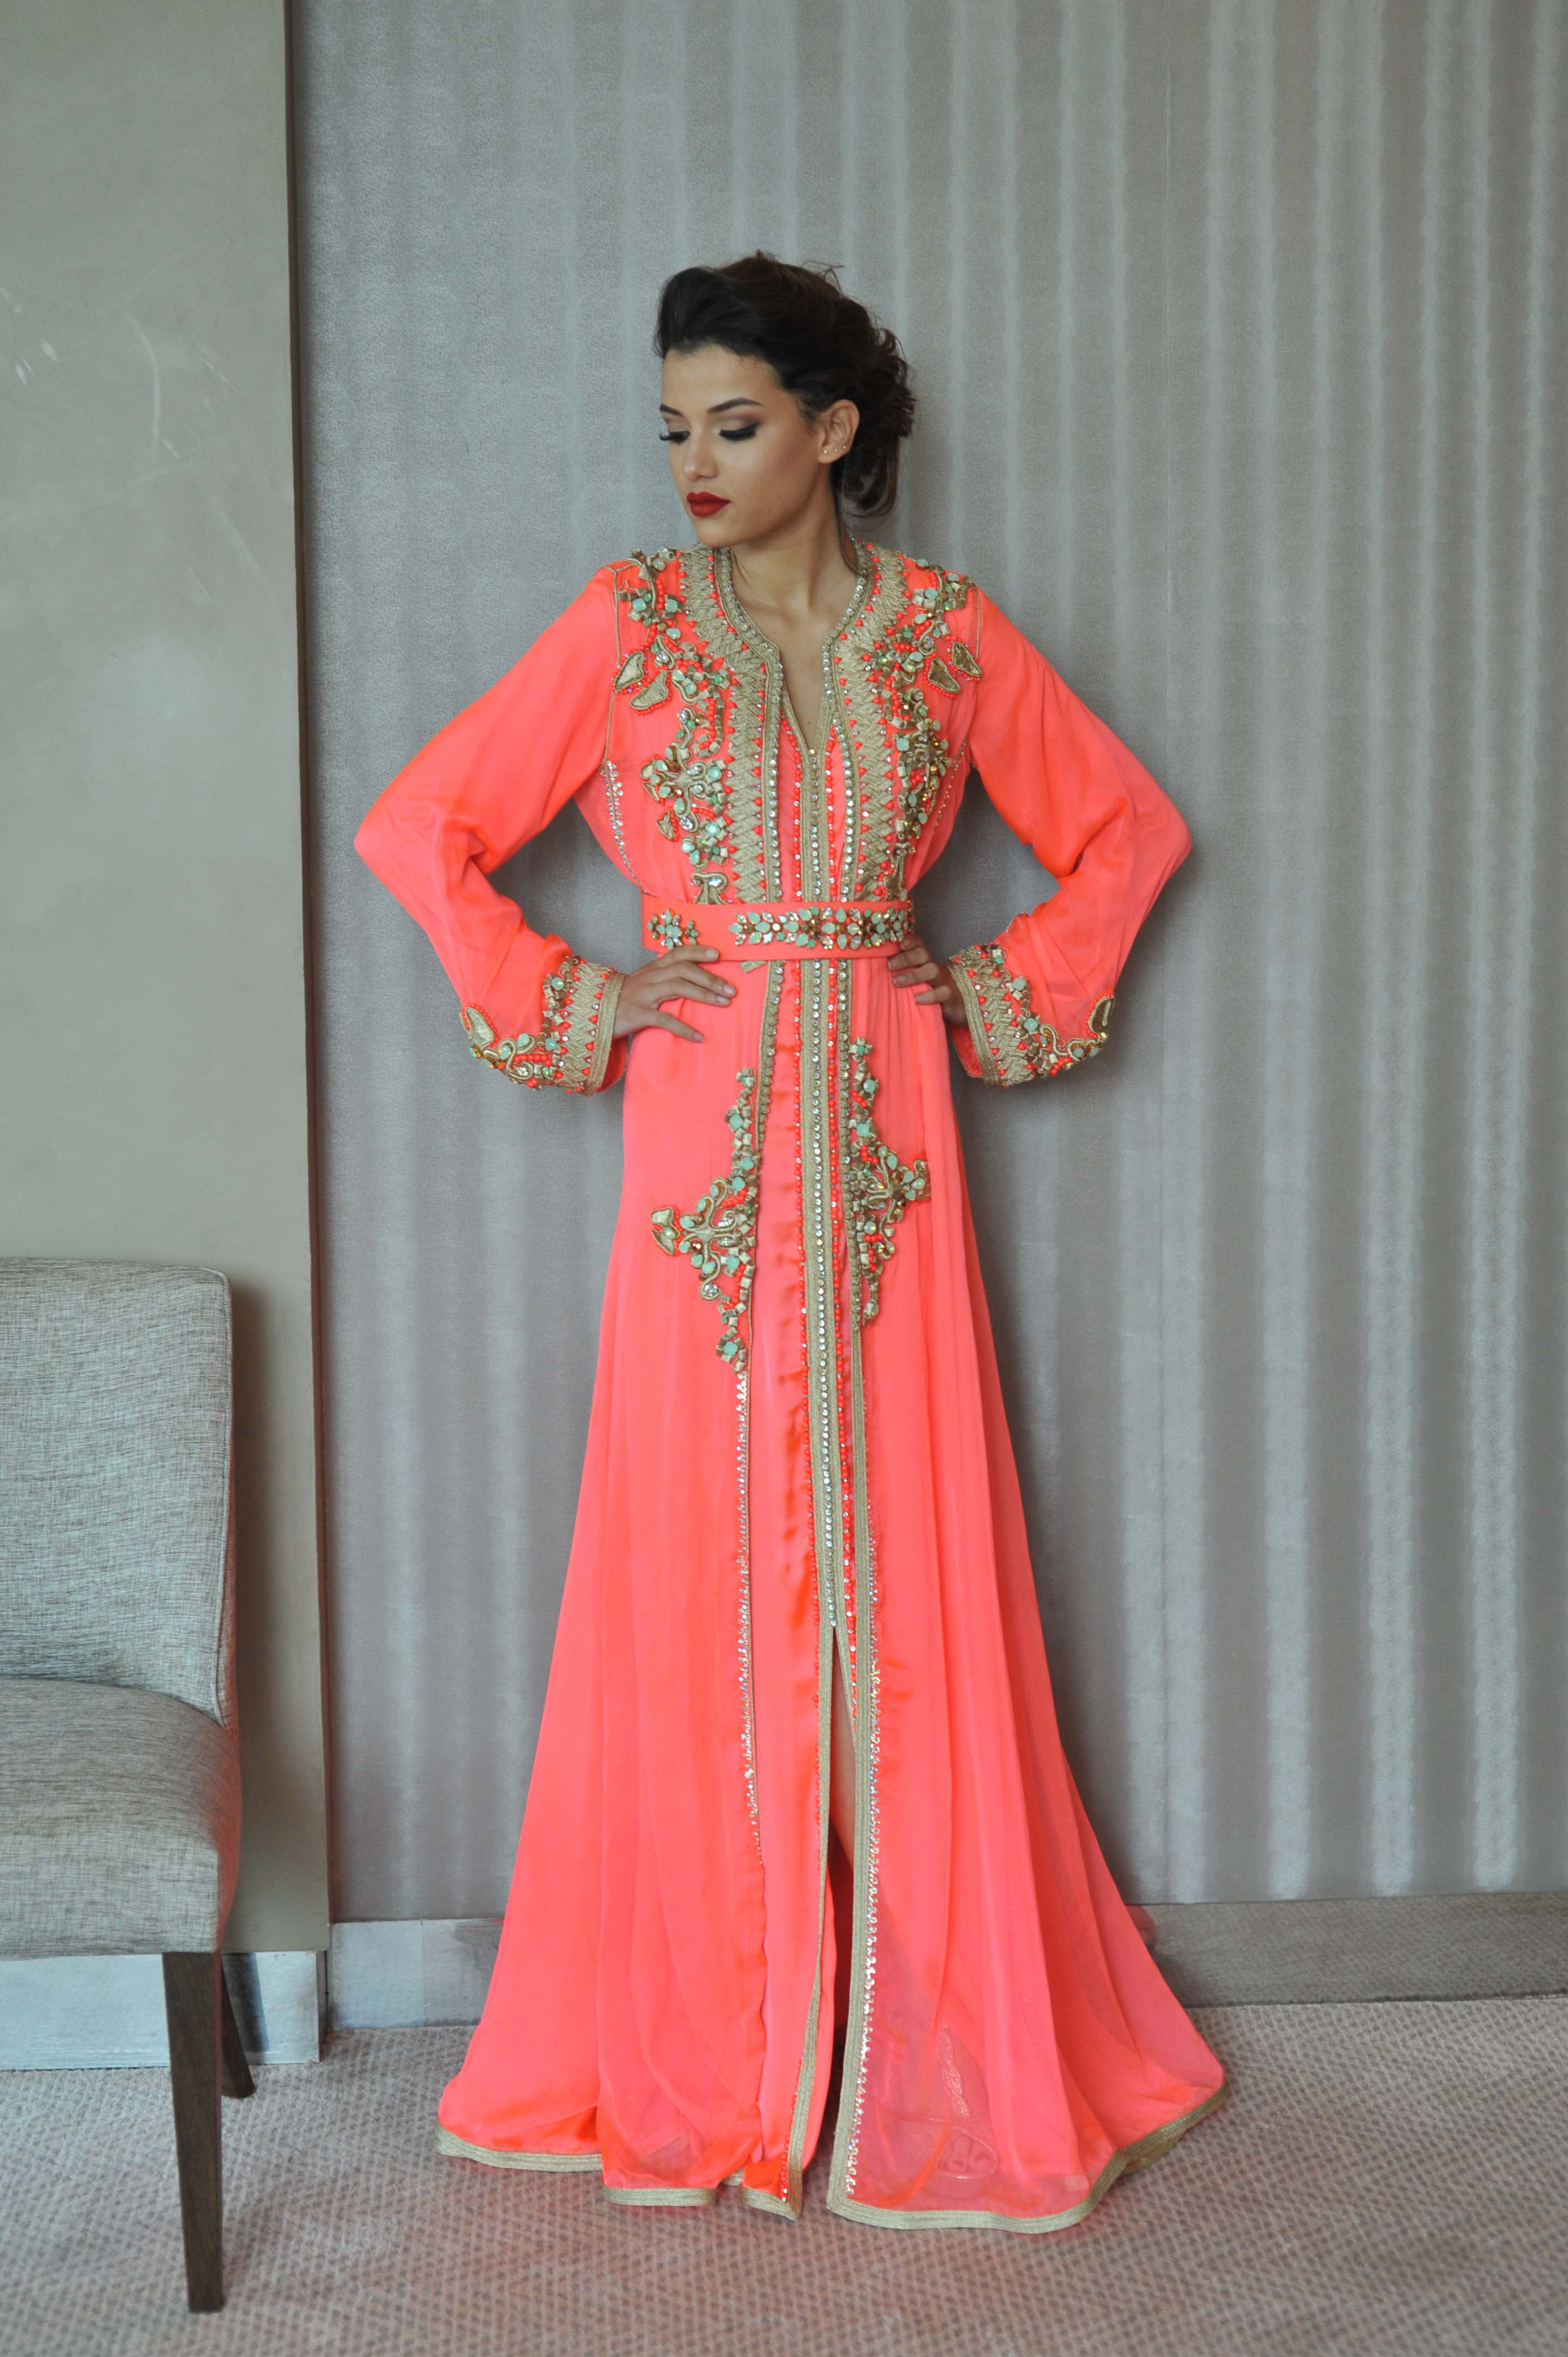 Caftan color flashy Rafinity haute couture